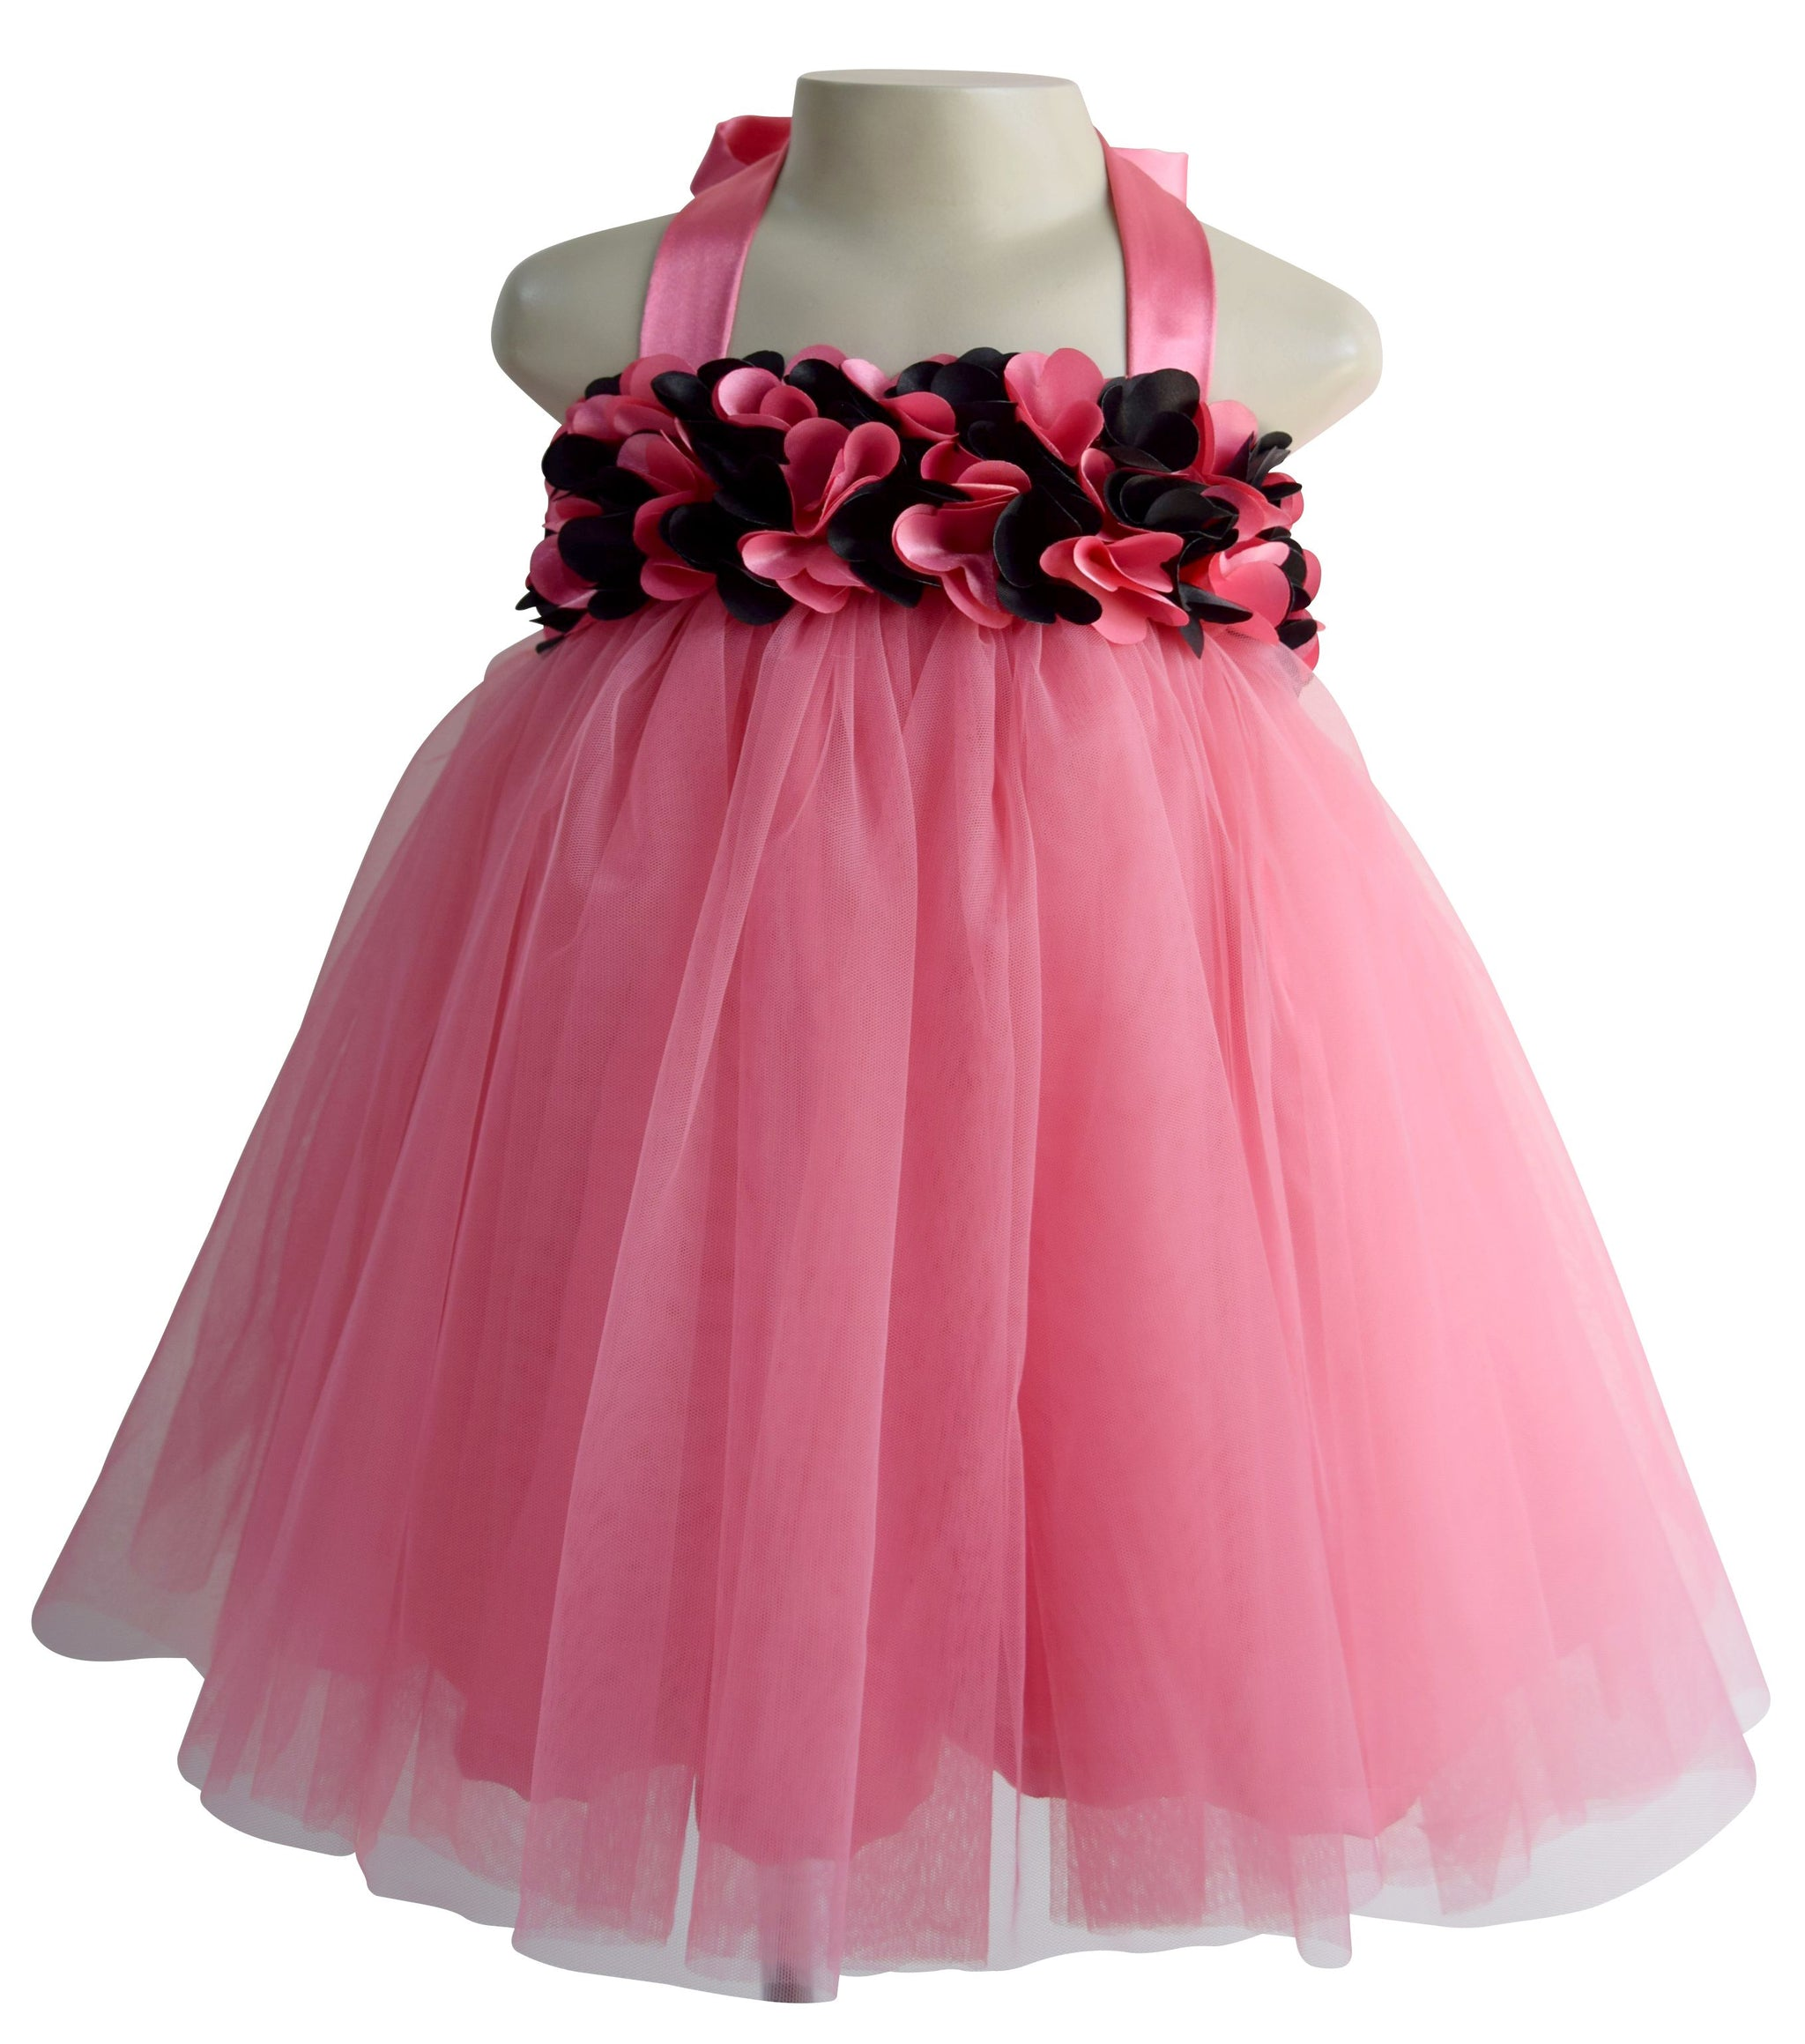 a25a17f771 Buy Girls party wear dresses online|birthday dresses|dresses for girls